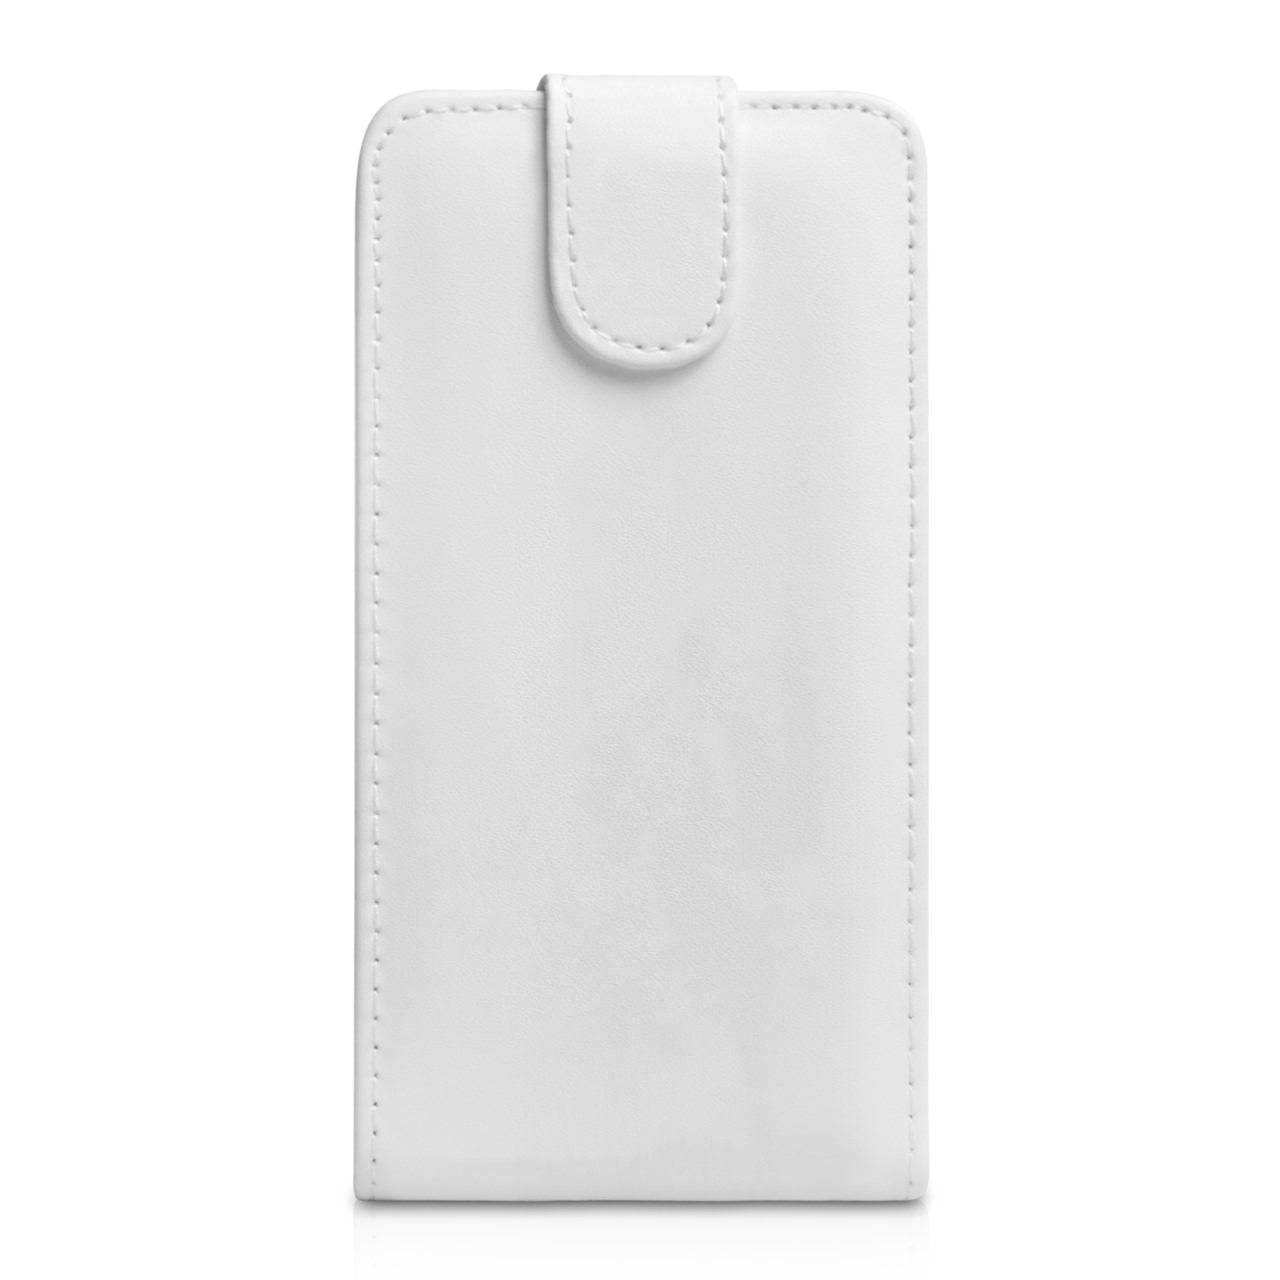 YouSave Accessories Sony Xperia Z1 Leather Effect Flip Case - White